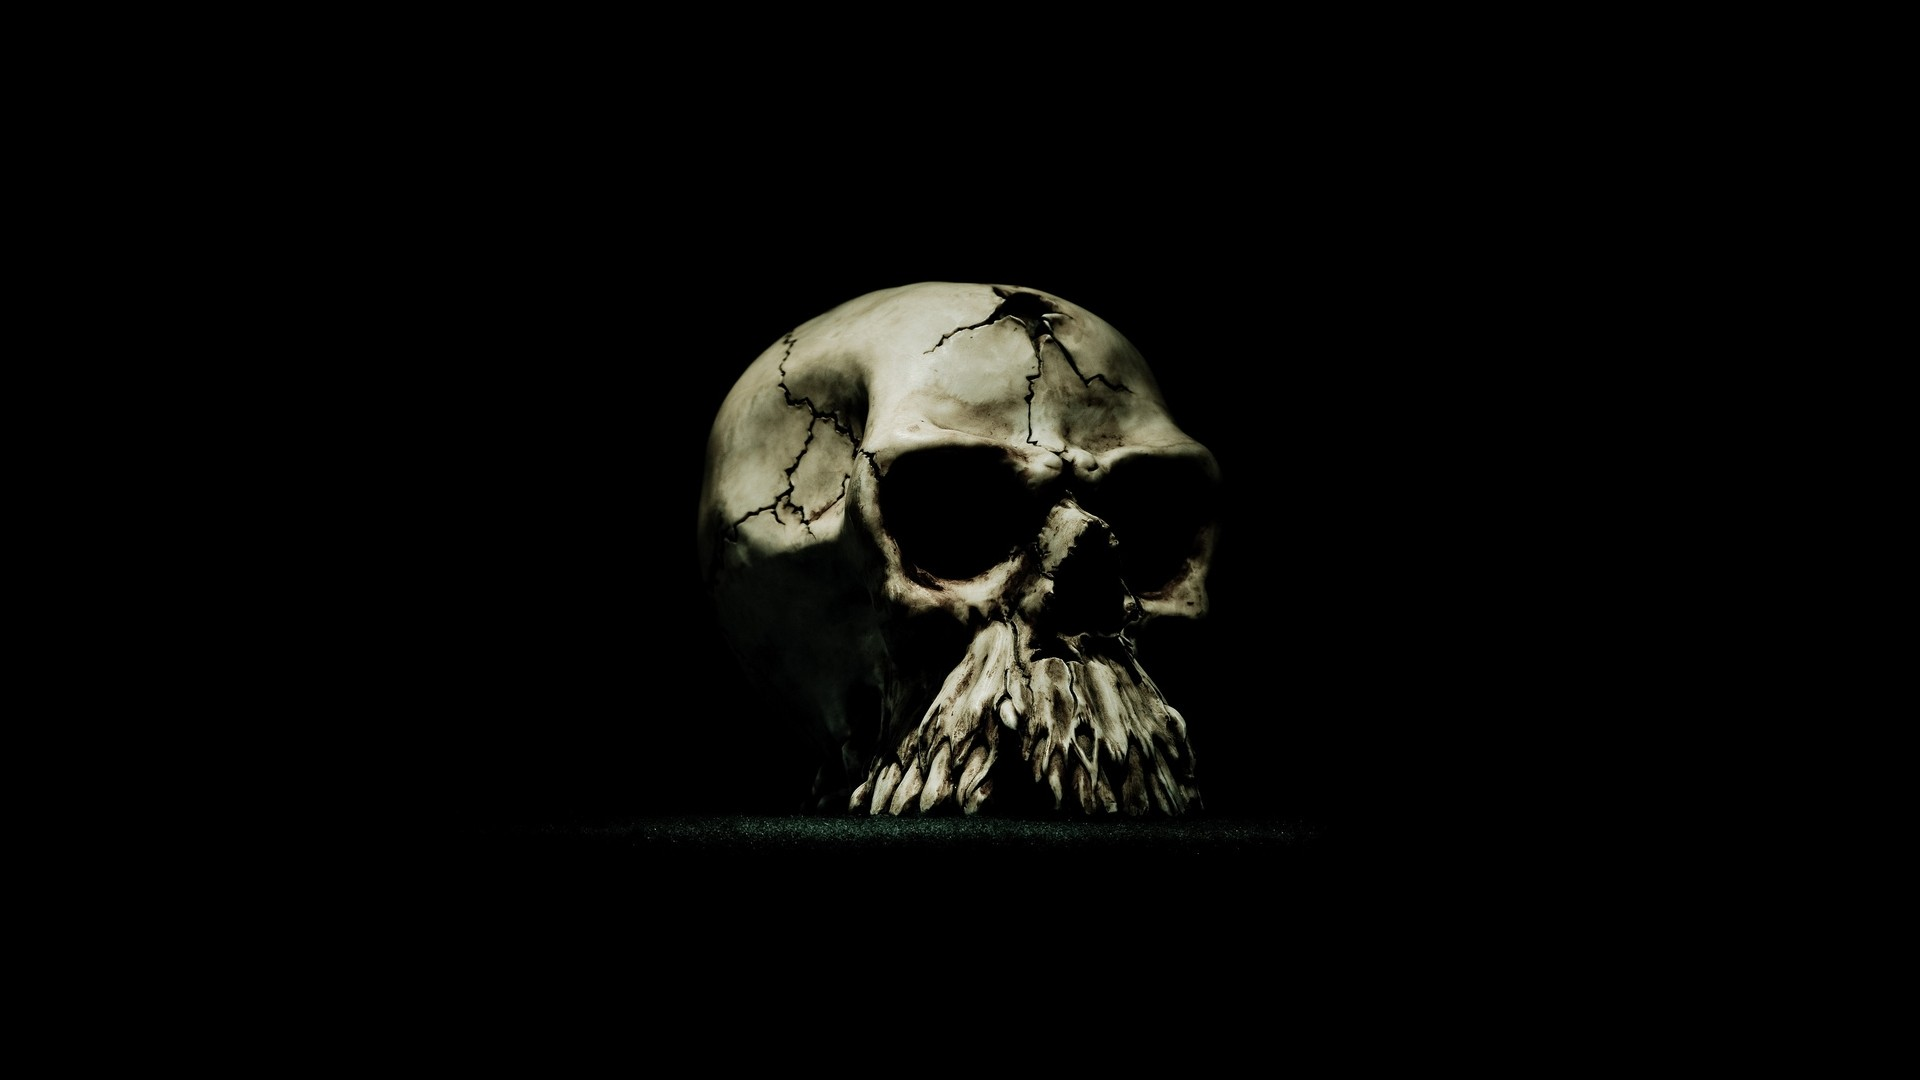 Skulls Wallpaper 183 ① Download Free Awesome High Resolution